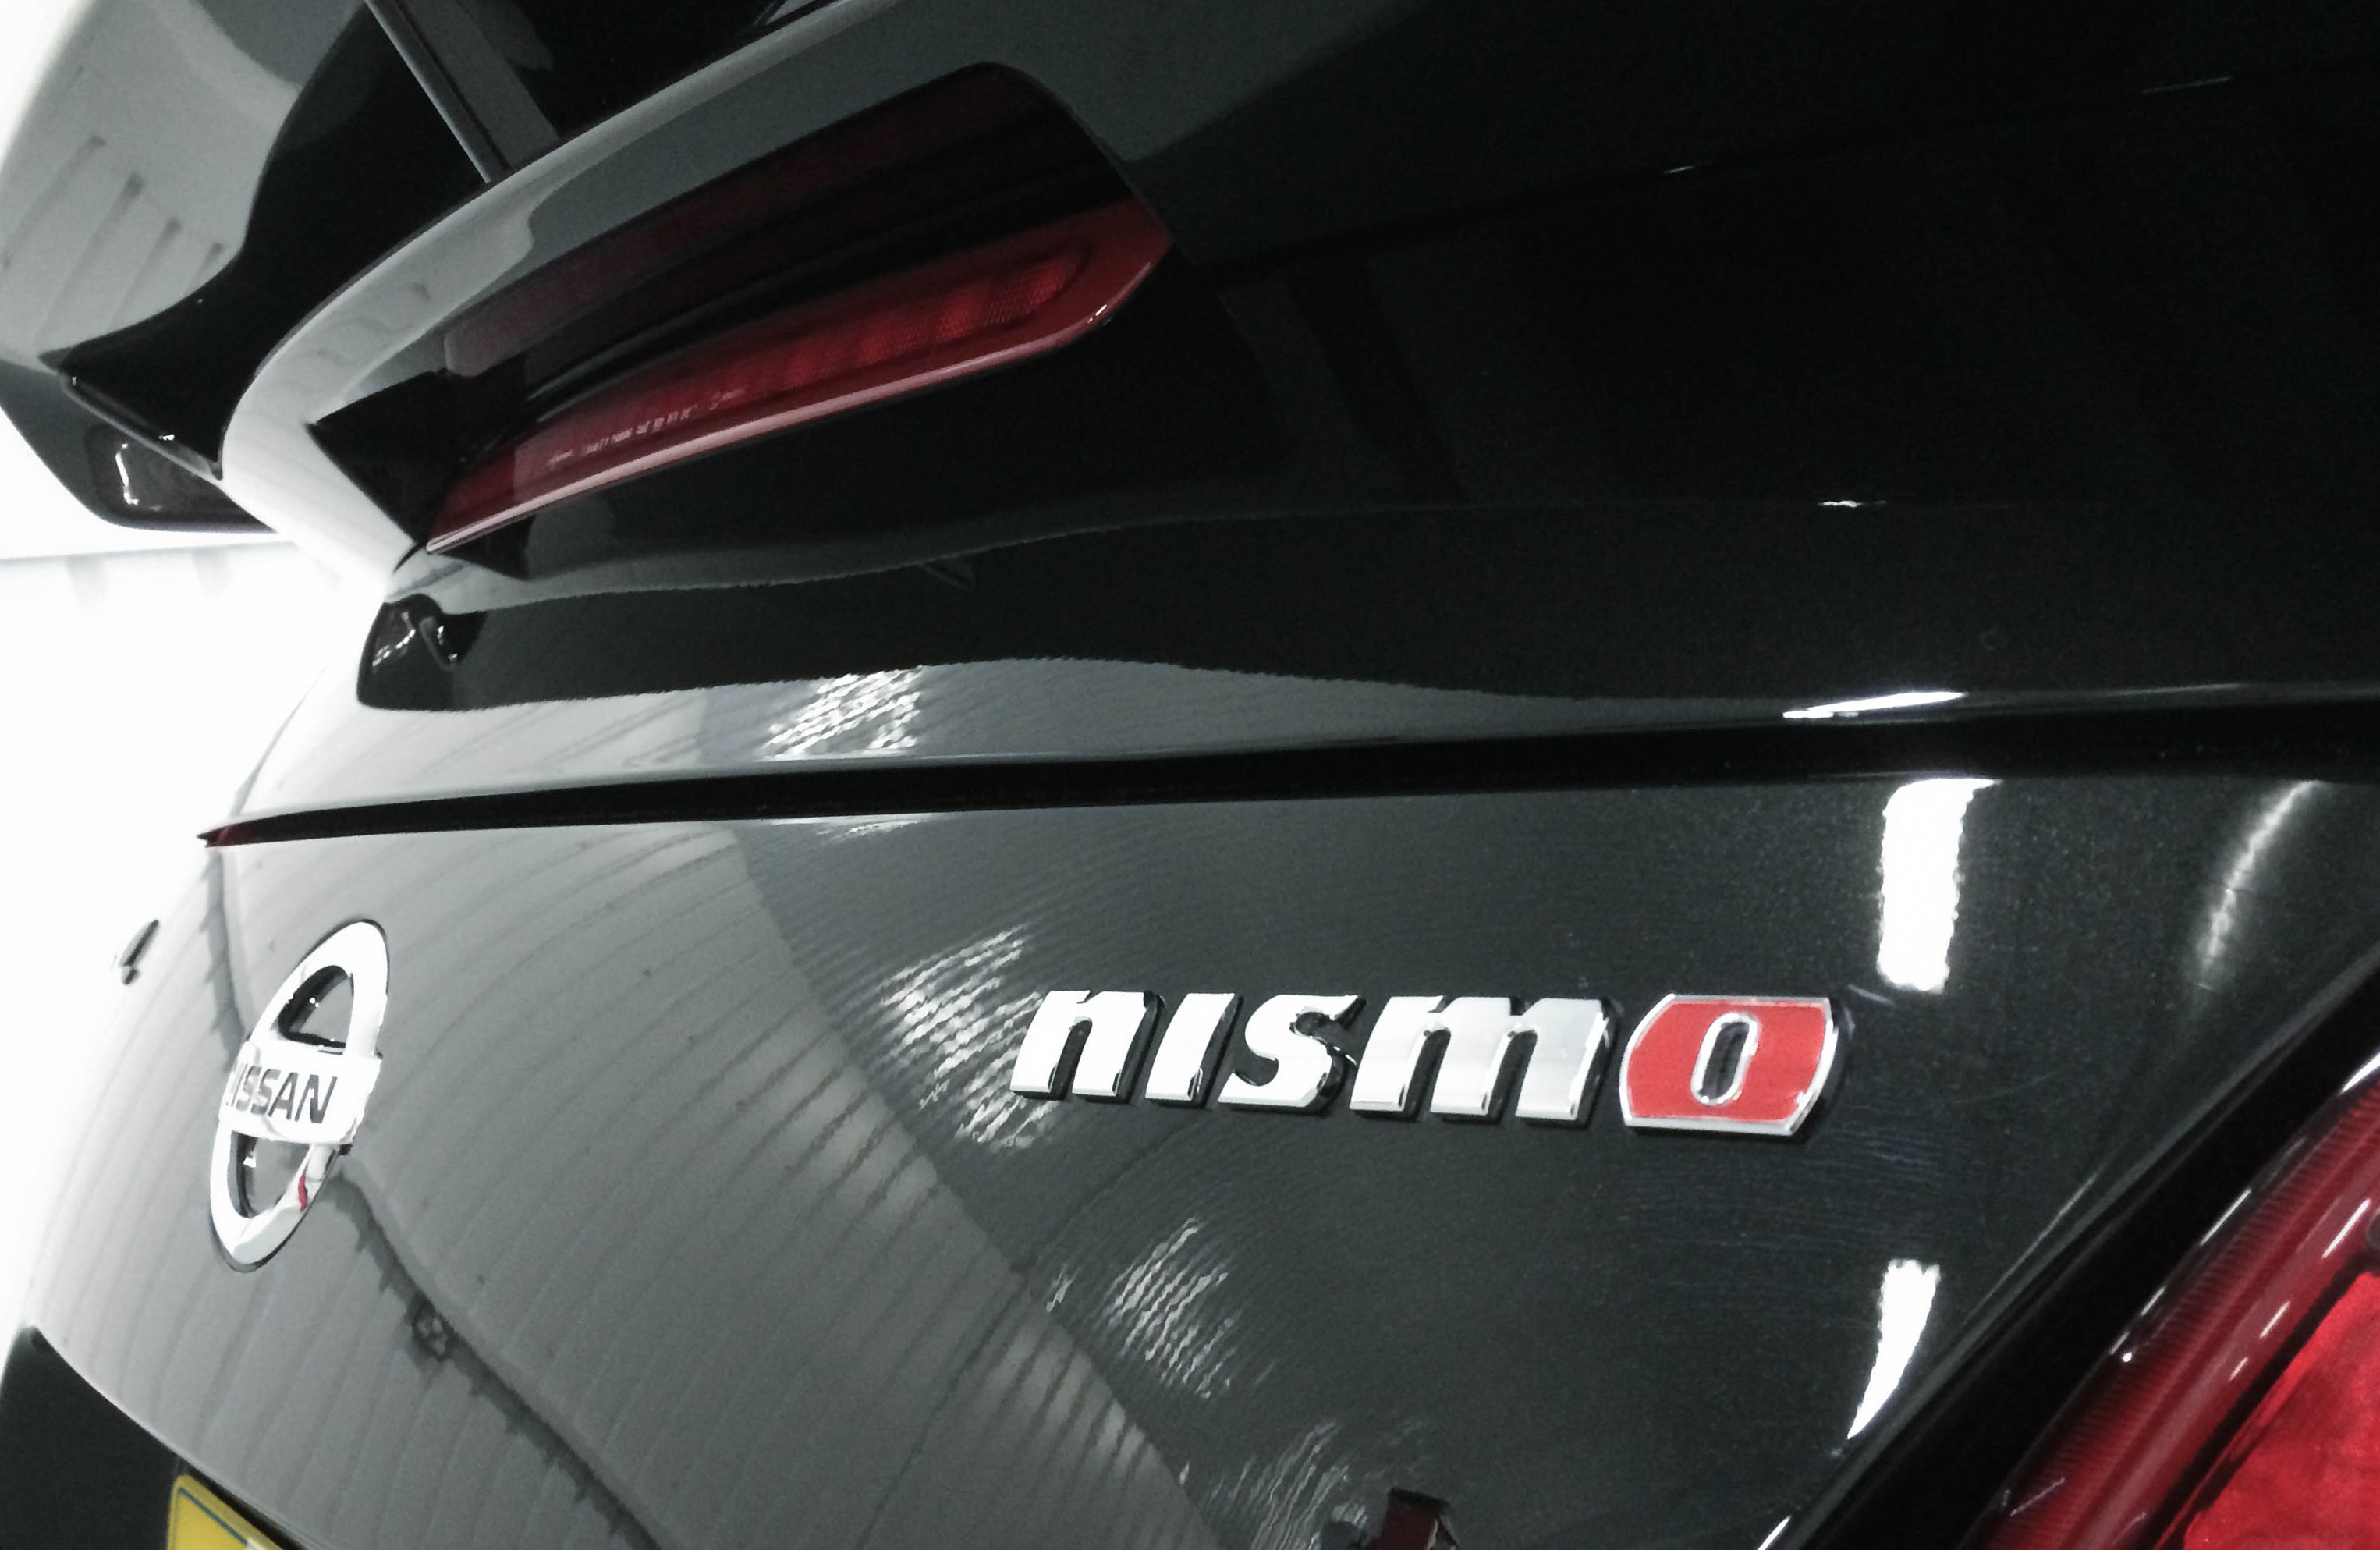 Nissan 370z Nismo – Badge